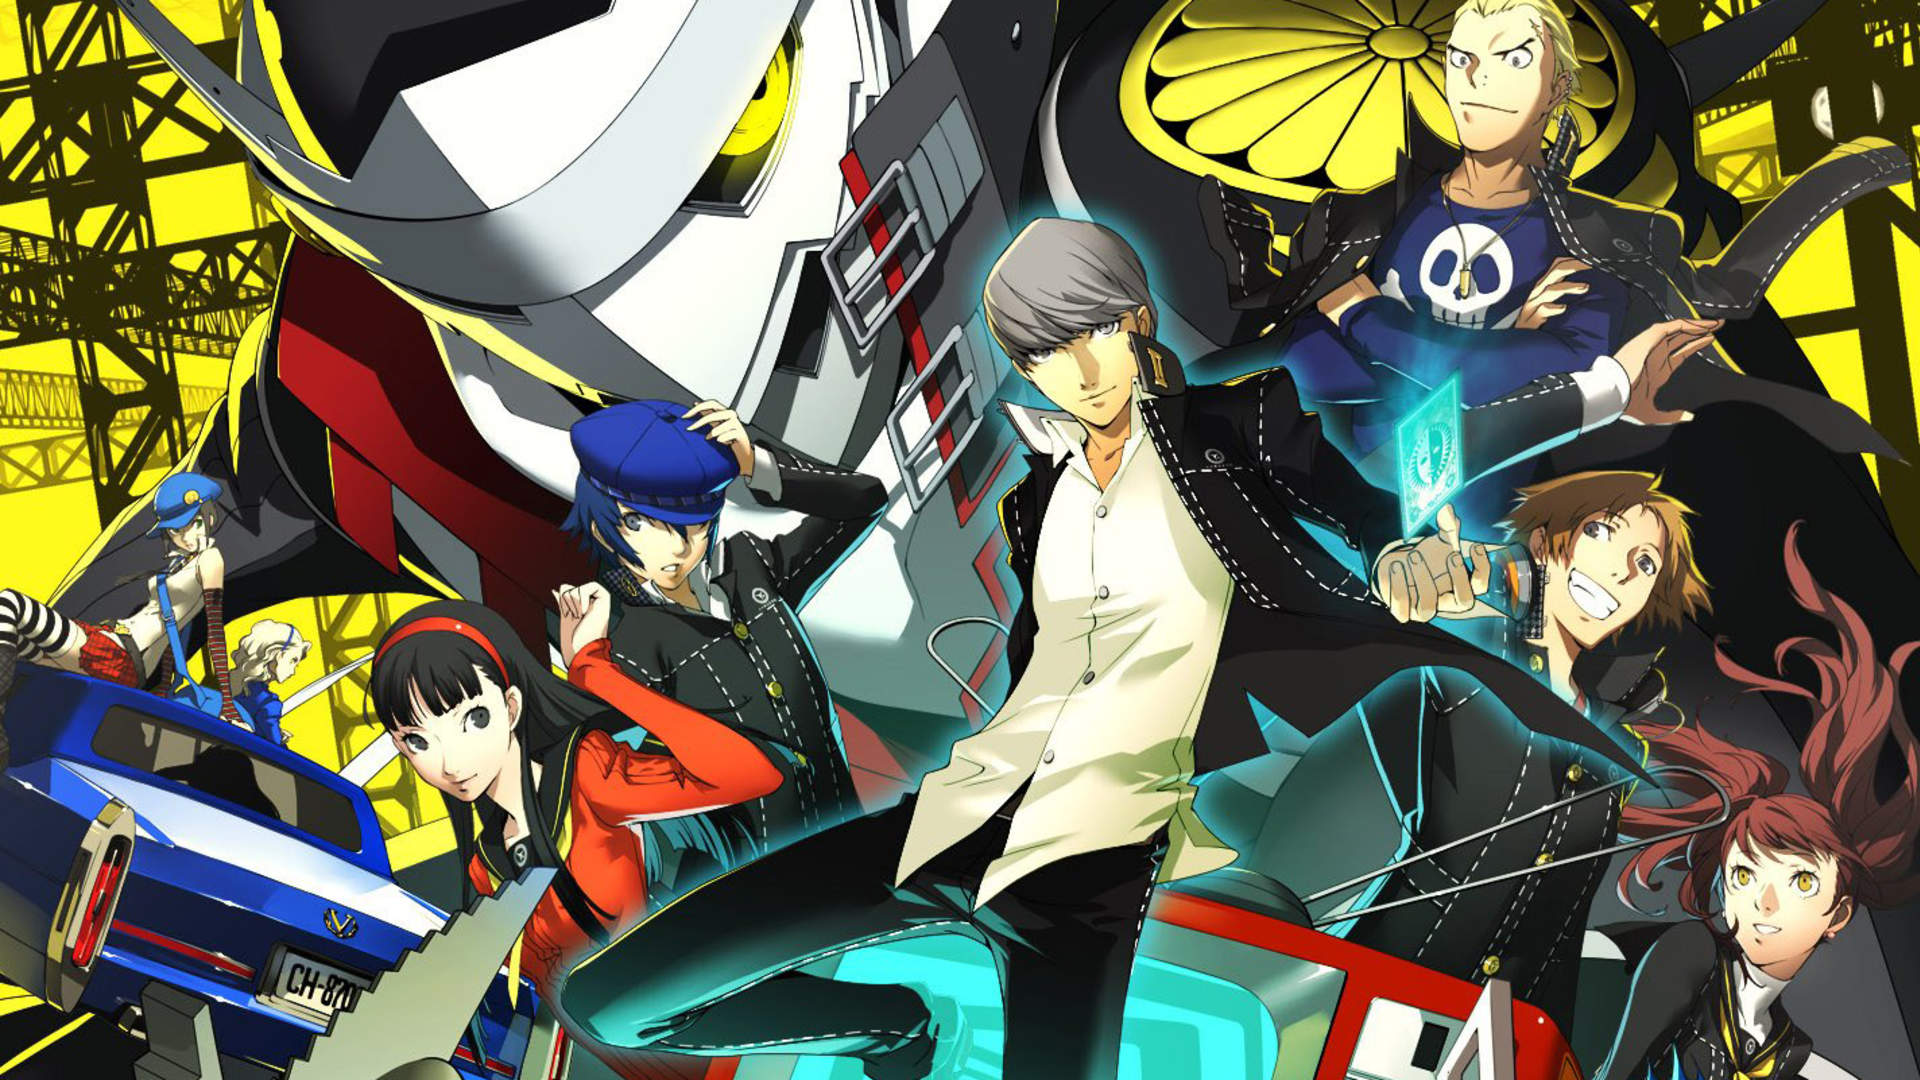 Official artwork for Persona 4.